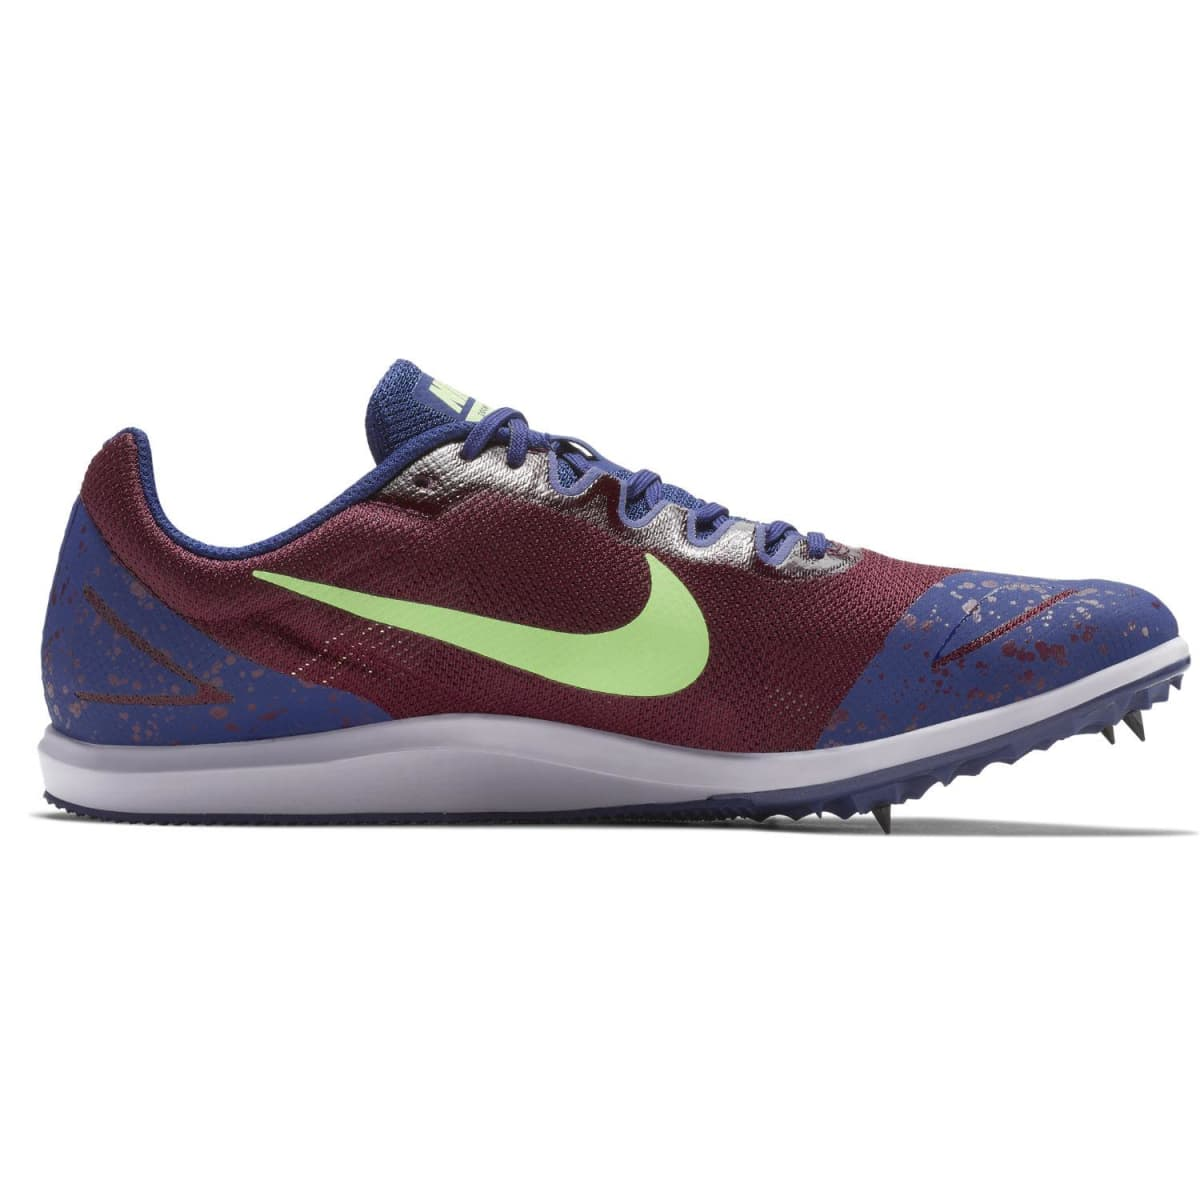 low priced 9a893 54eca Nike Zoom Rival D 10